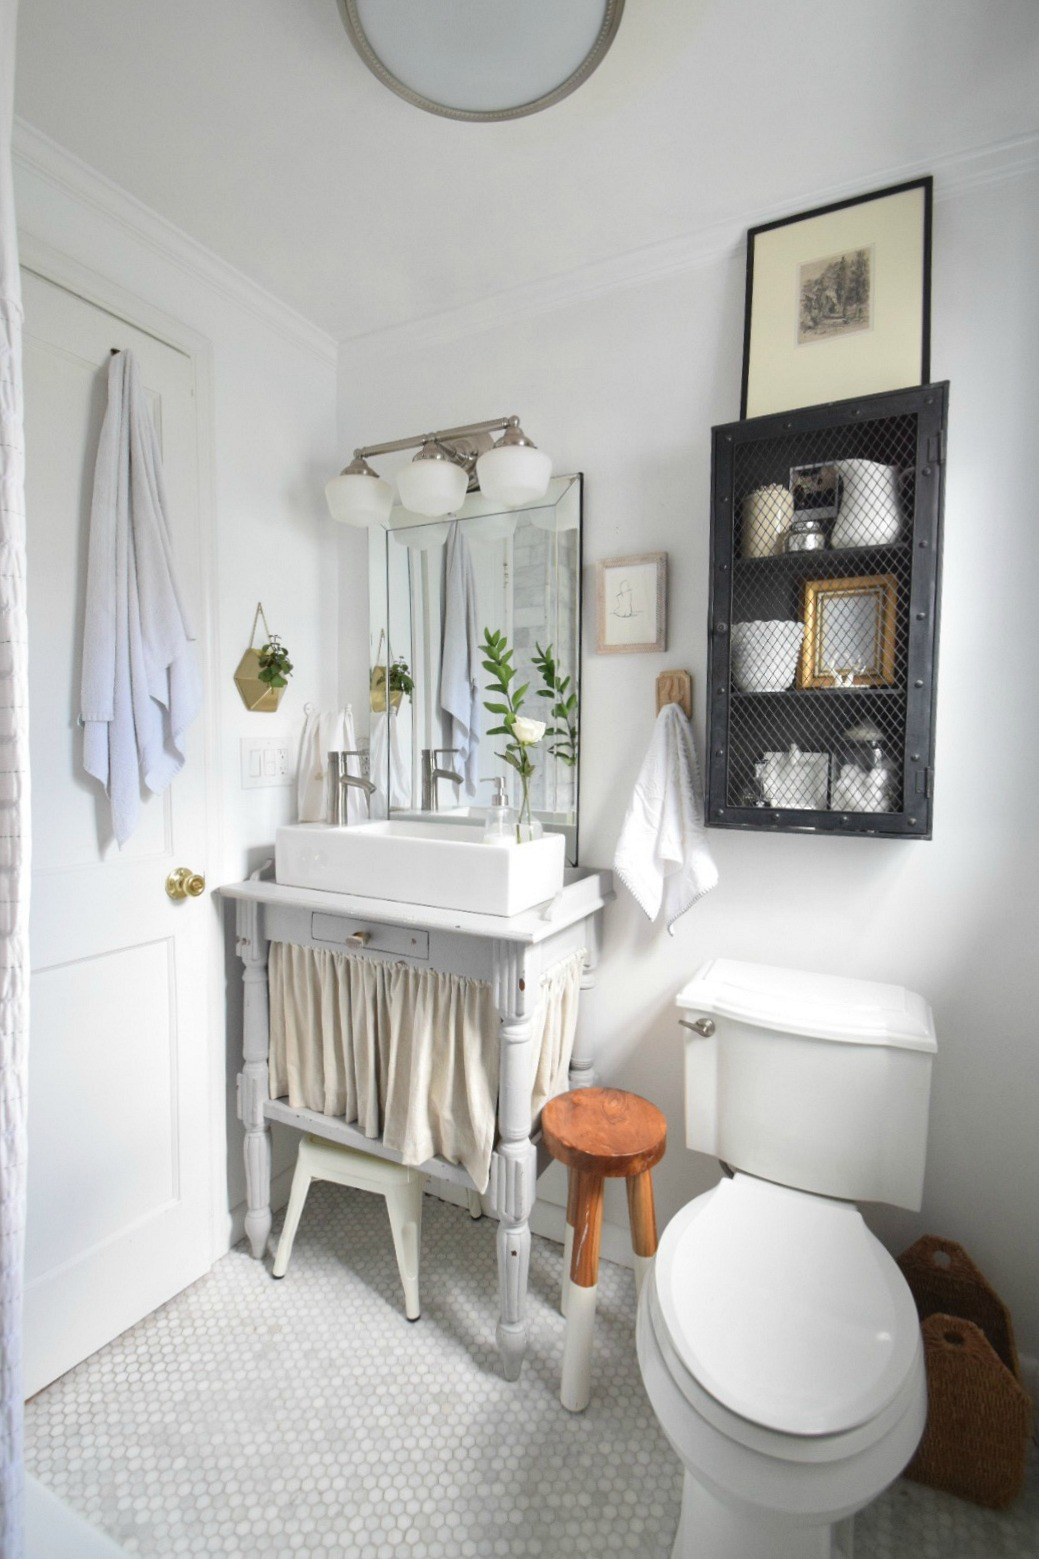 Small Bathroom Ideas and Solutions in our Tiny Cape ... on Simple:zvjxpw8Nmfo= Small Bathroom Ideas  id=89292